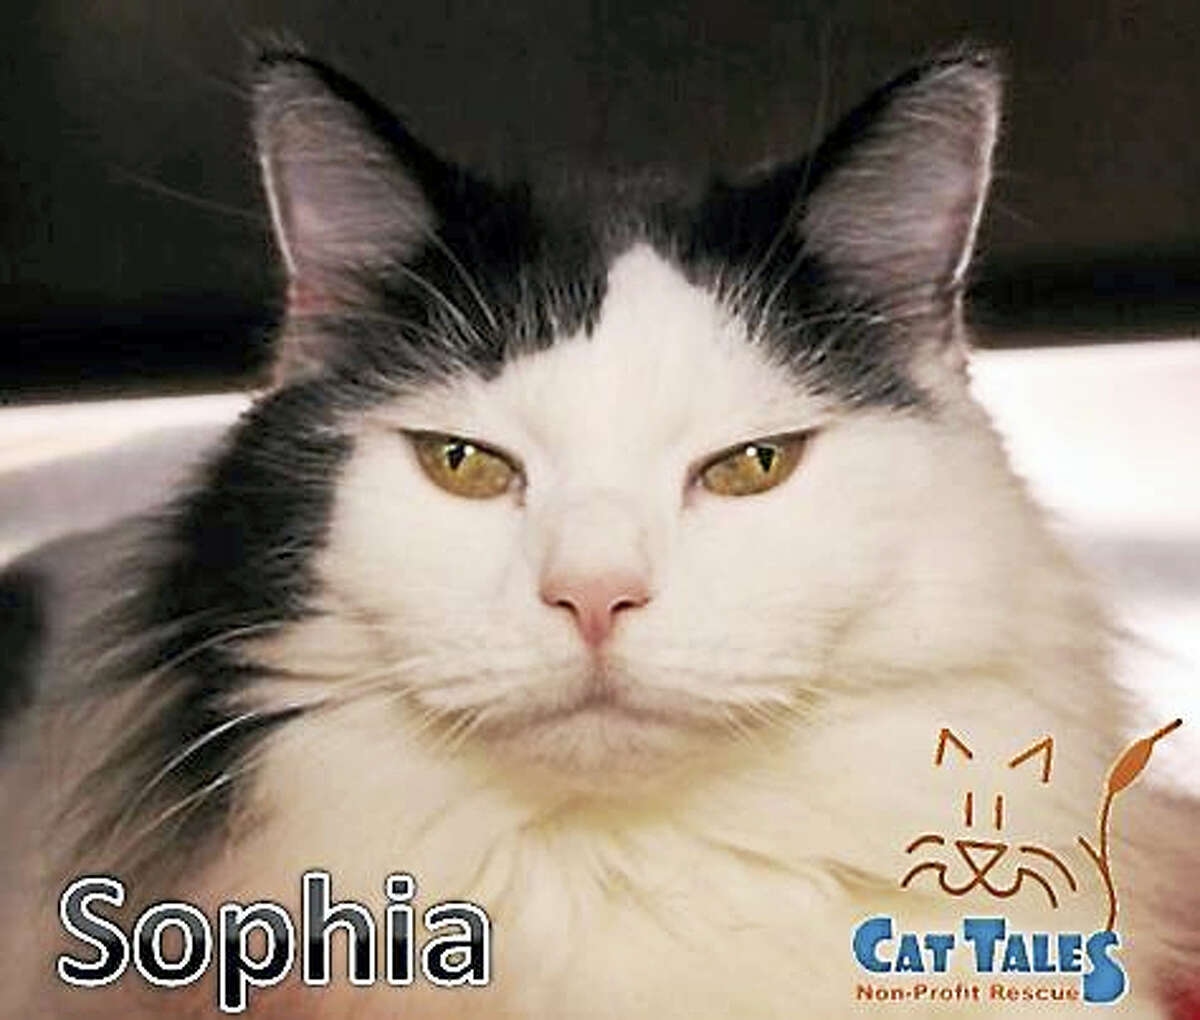 Gender: FemaleBreed: Domestic Long HairColor: Black & WhiteAge: 2 years oldHello, my name is Sophia. I was left on top of a dumpster in a cat carrier, abandoned. Thank goodness the right person found me and I was saved by Animal Control. I am such a sweet girl and very beautiful. I do need a quiet home with a patient person who will give me time to adjust to everything. I love to be pet and love lots of attention. I'd love to curl up with you on the couch or on your bed. I have so much love to give. I am fully vetted and ready to go home so please adopt me today!No Dogs / No ChildrenWeb: http://www.CatTalesCT.org/cats/SOPHIAPhone: (860) 344-9043Email: ??Info@CatTalesCT.org?See our commercial! https://youtu.be/Y1MECIS4mIc